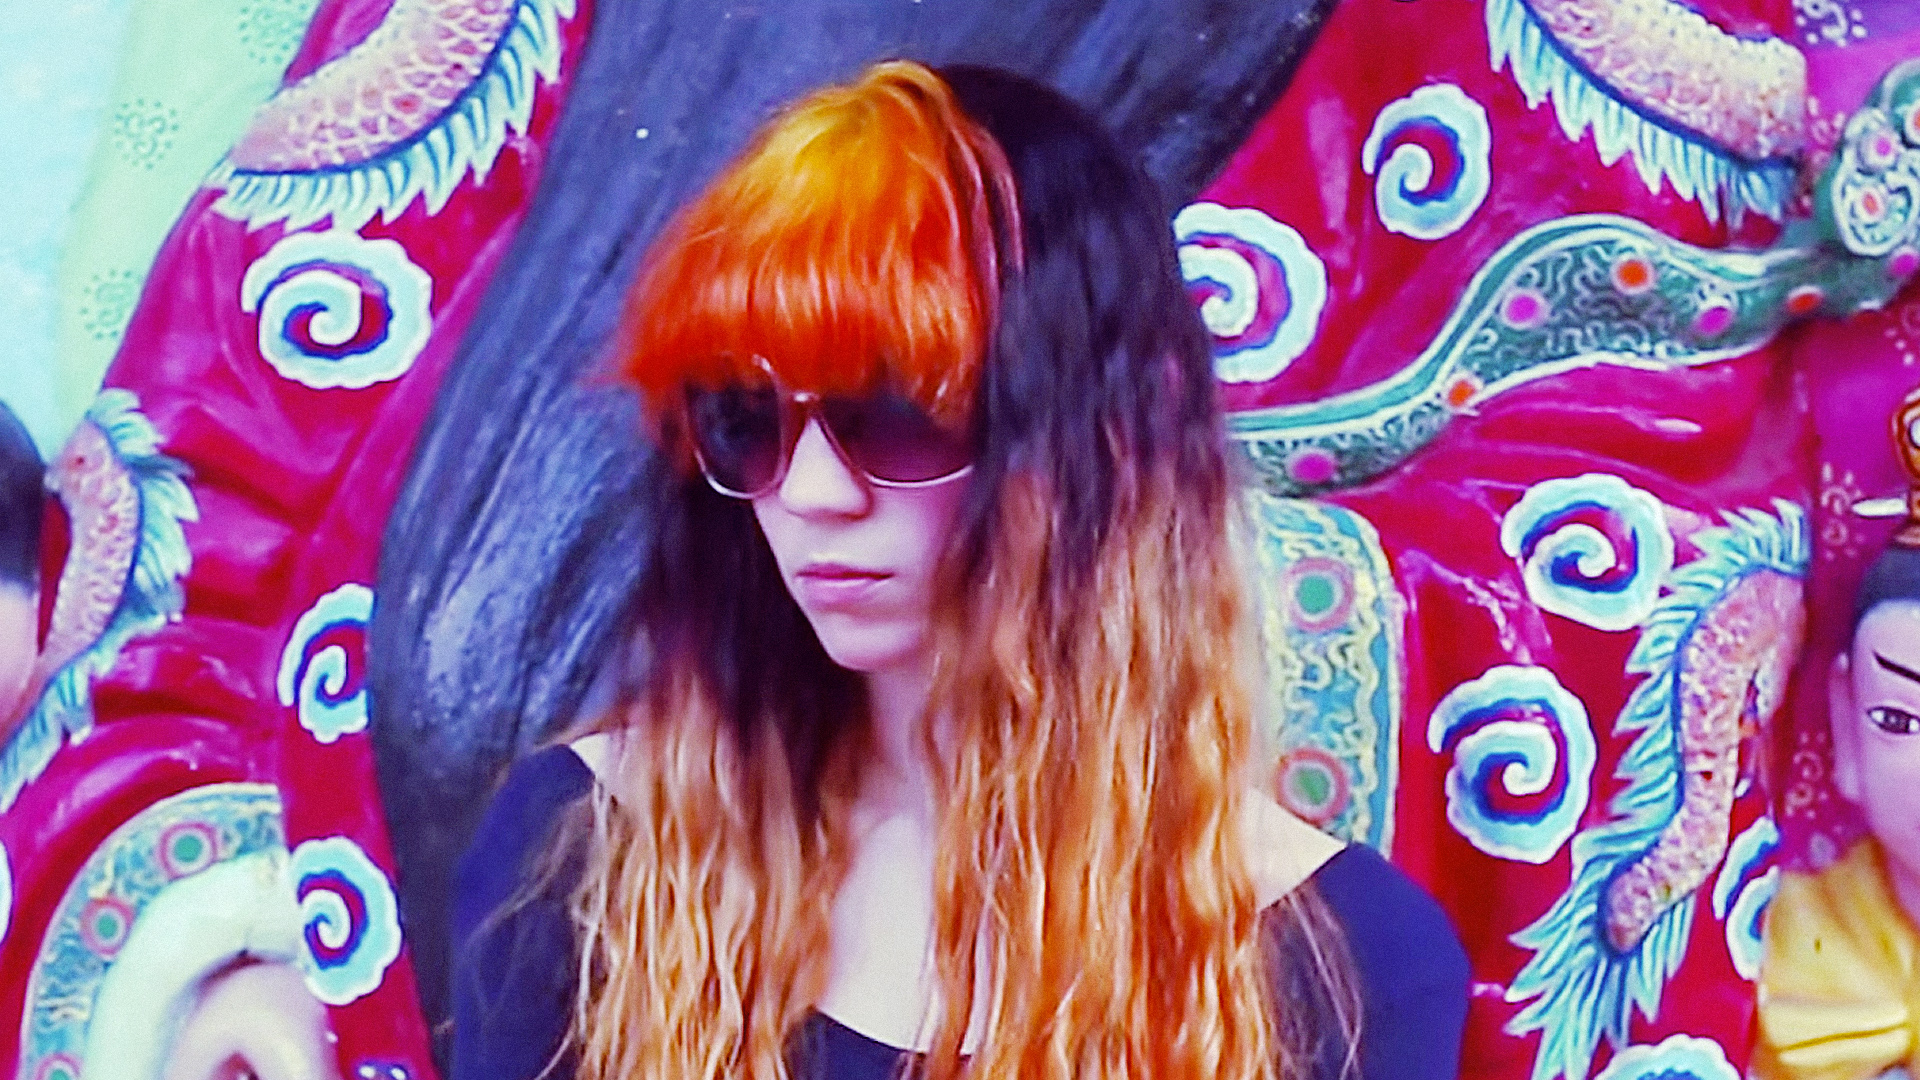 grimes-realiti-orange-hair-sunglasses